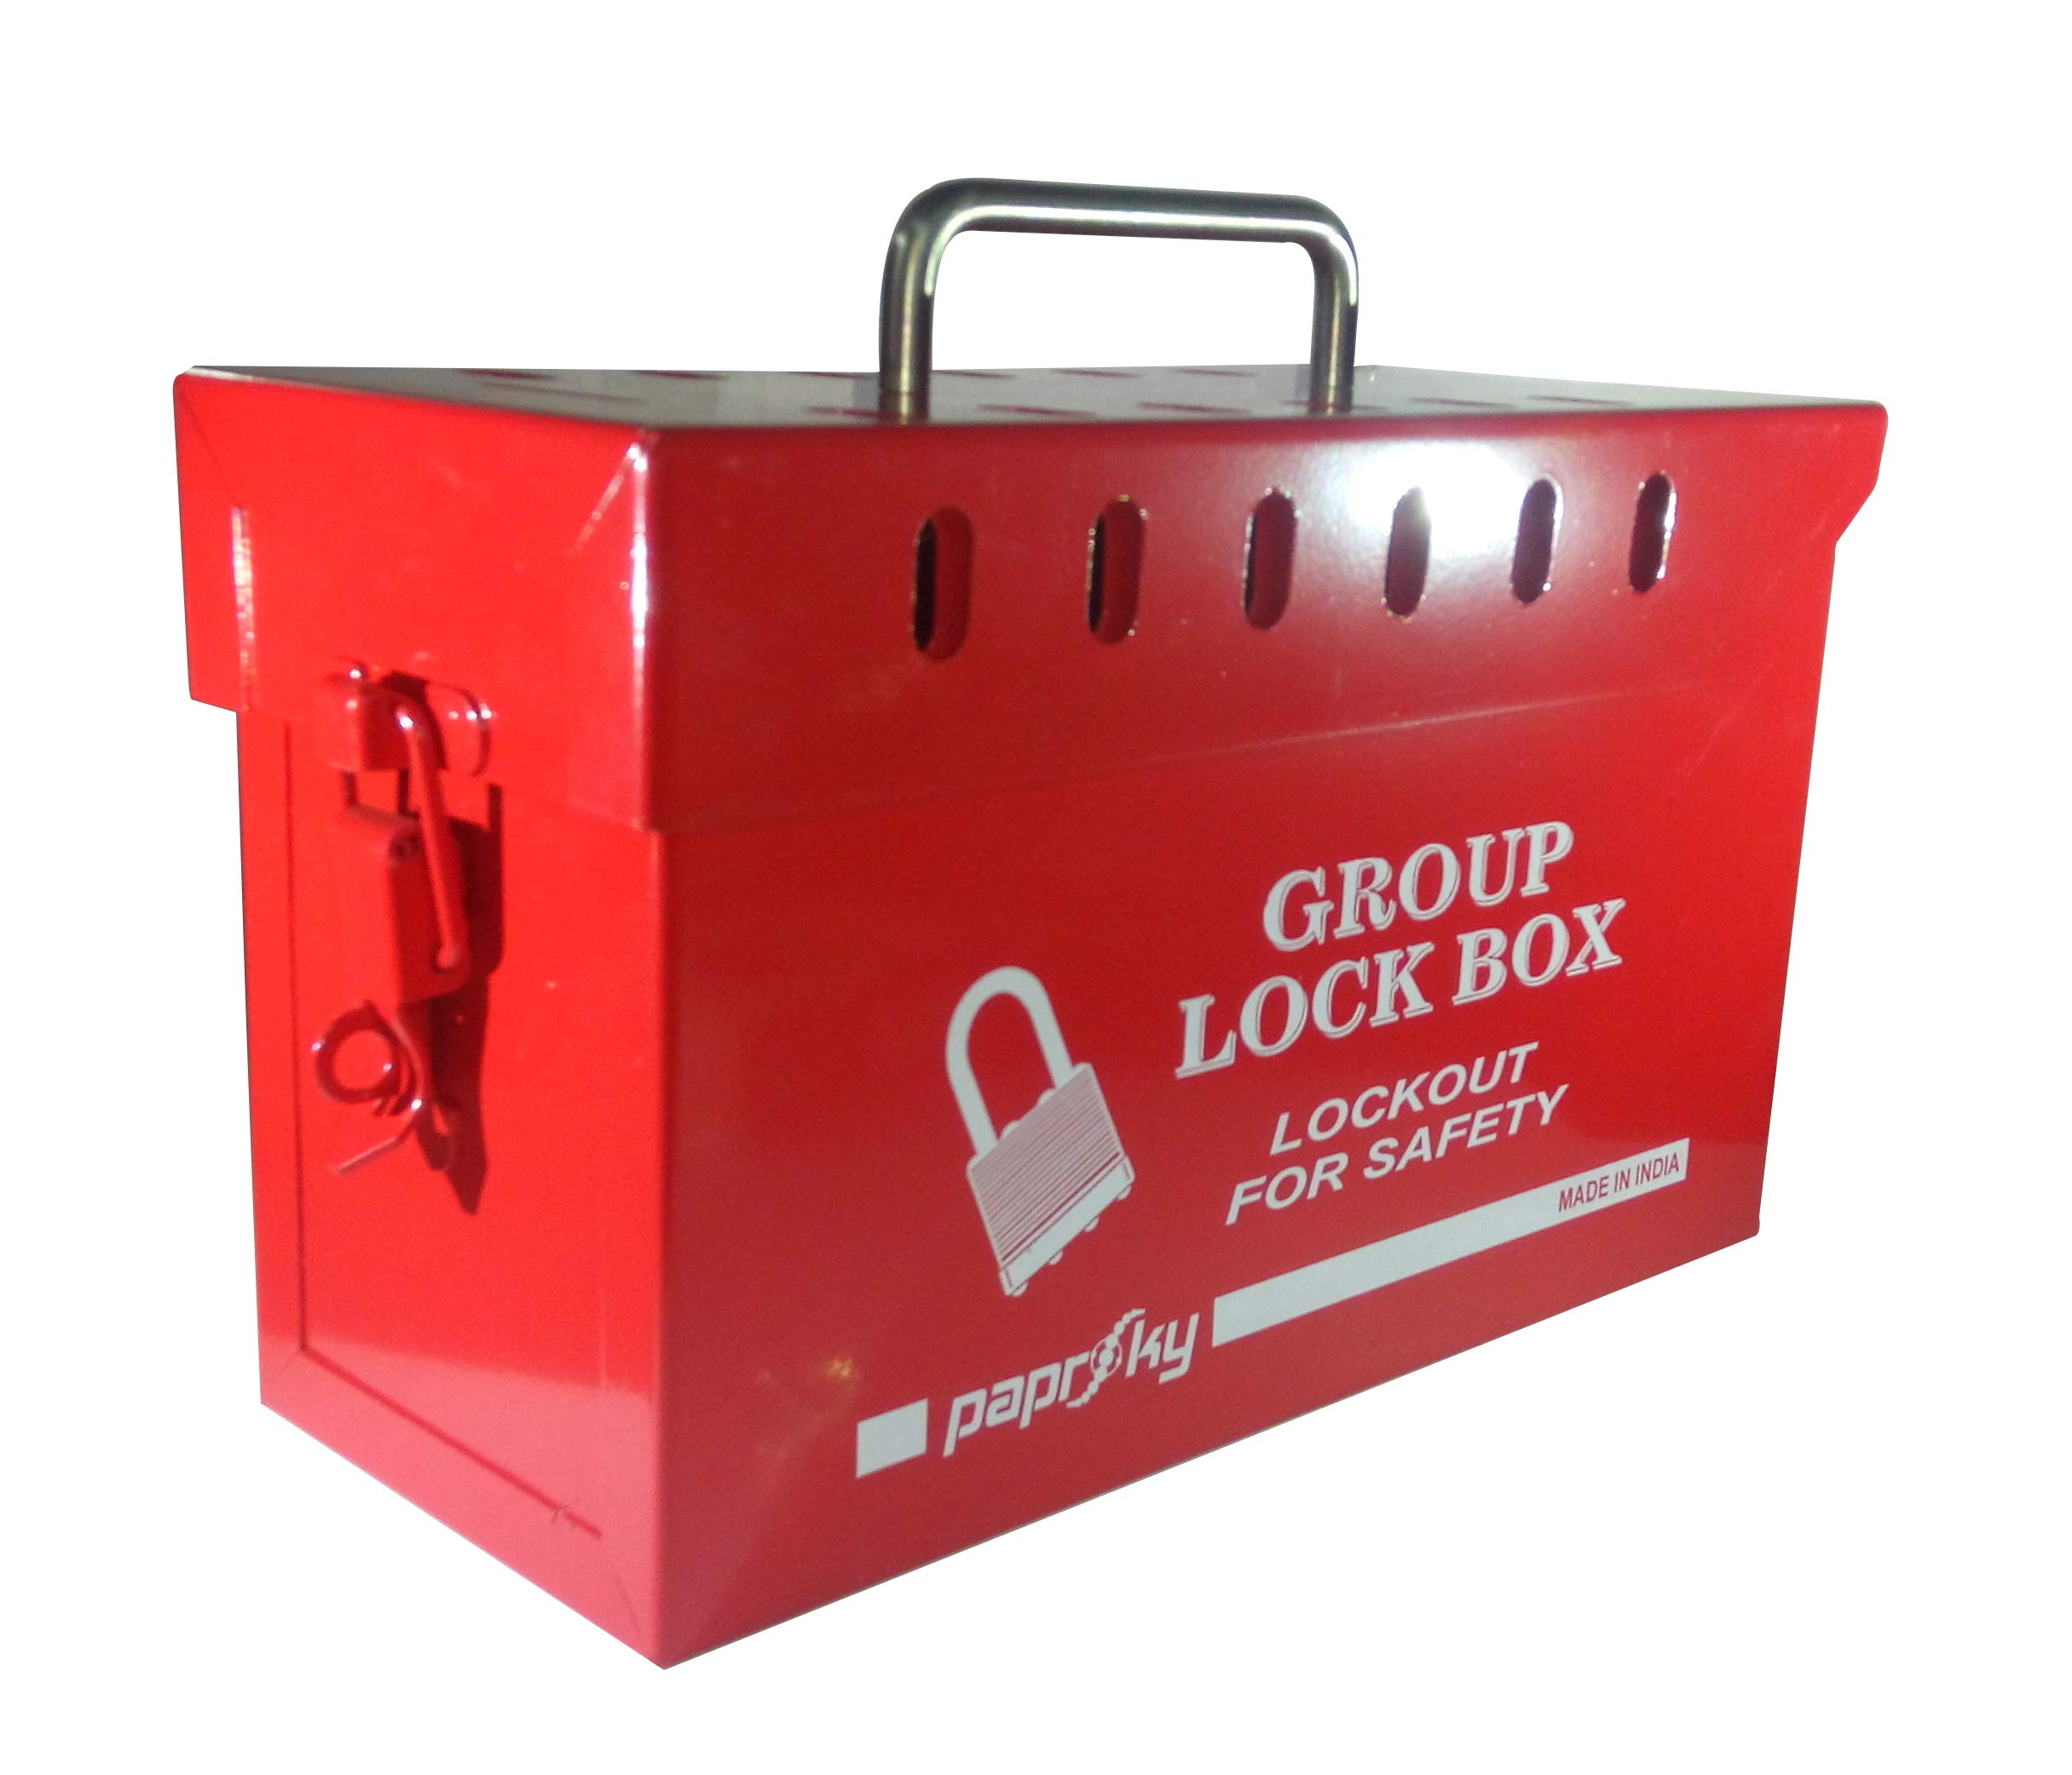 Group Lock Box - 13 Locks (RED) - PS-LOTO-GLB13